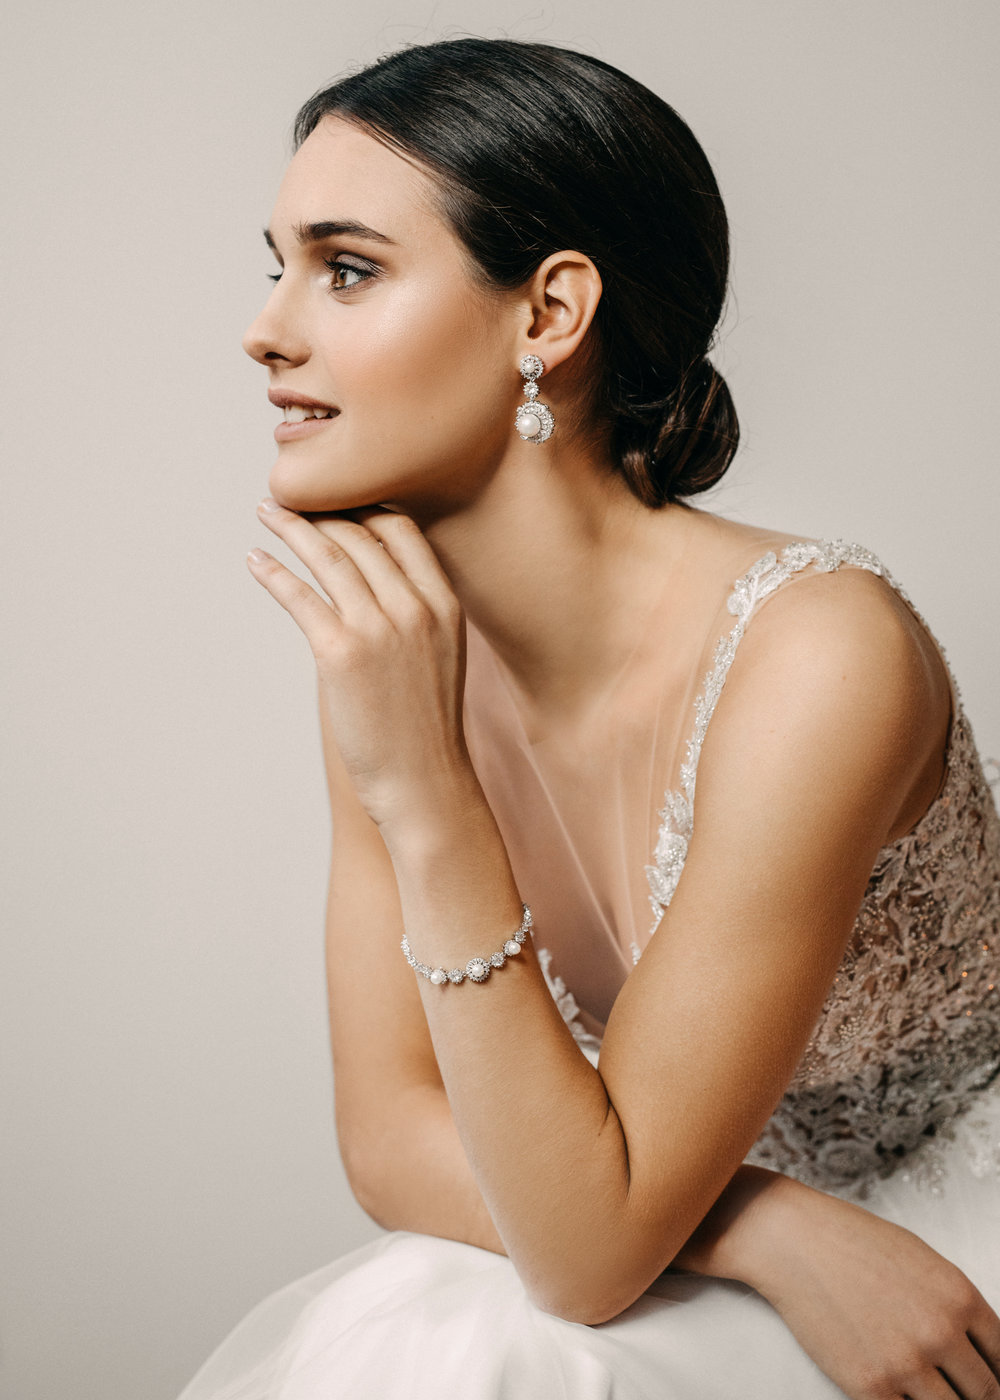 Biano - Modern Jewellery For Bride - Handmade in SwitzerlandEarrings and Bracelet SetsPossibility to Rush OrdersFree Shipping WorldwideCustomisable OrdersFast response on your questions